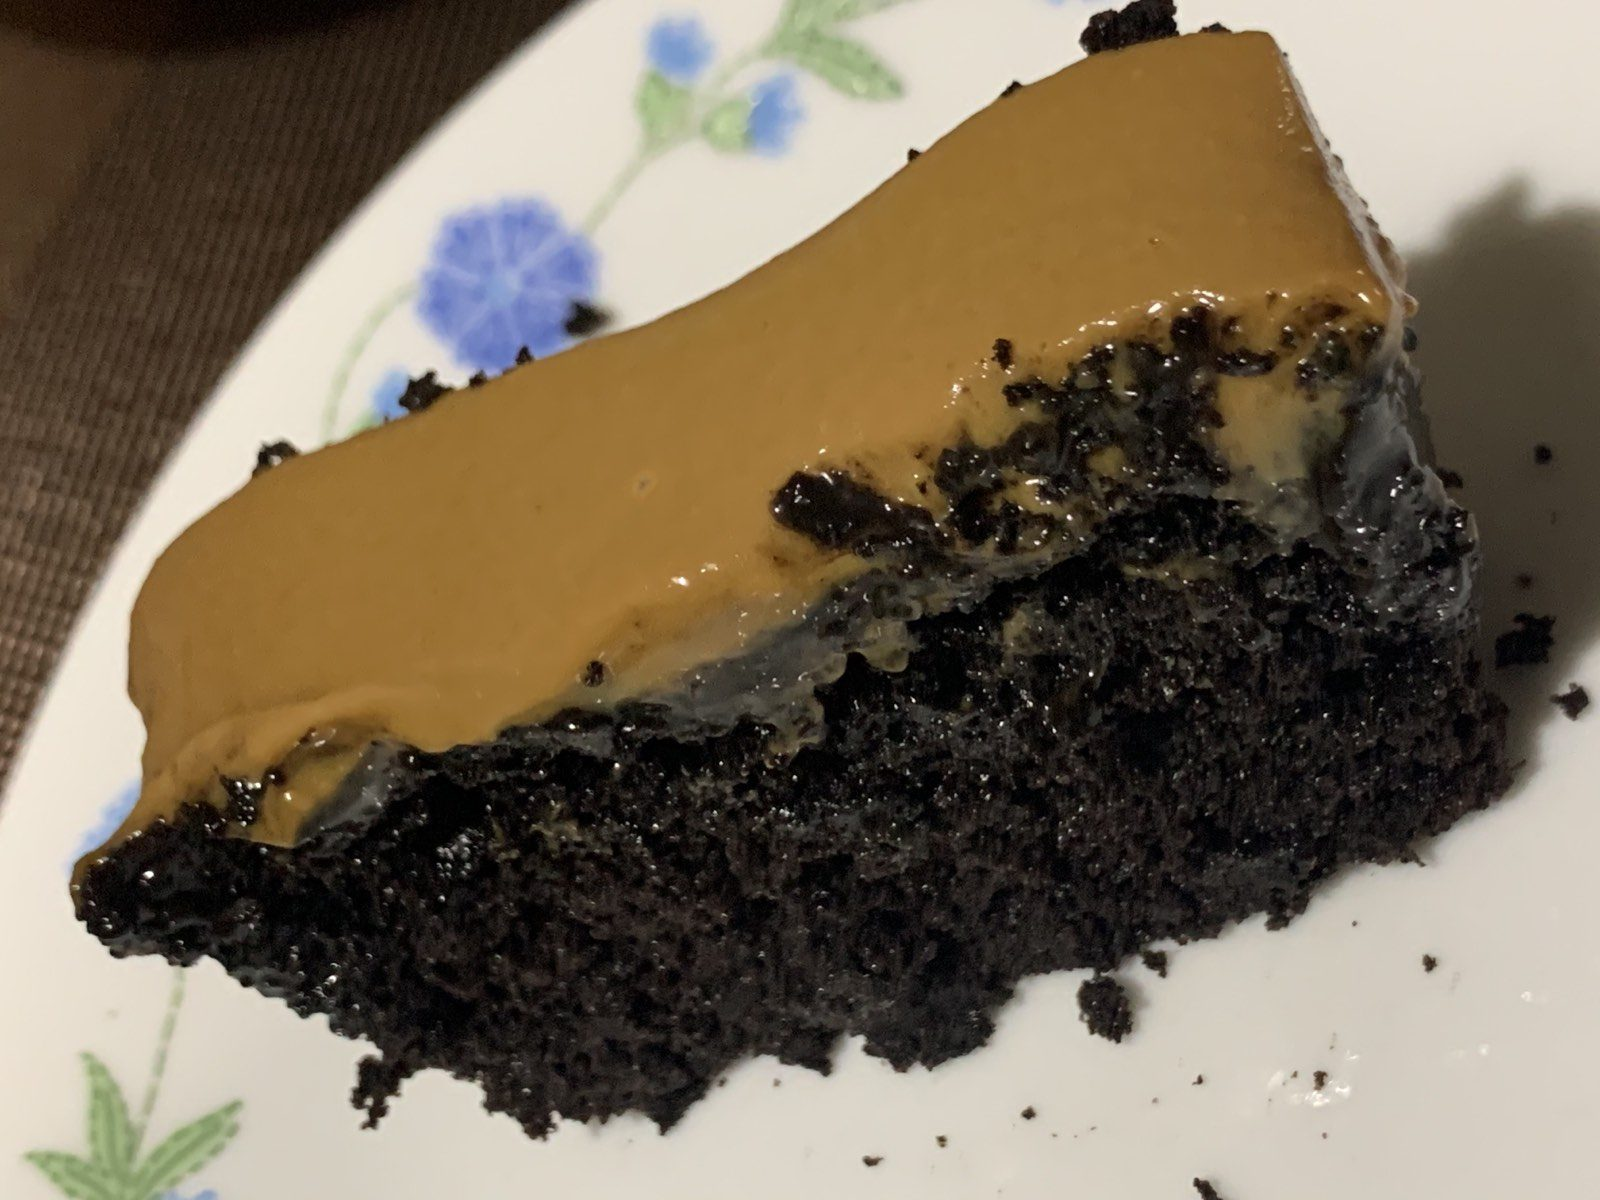 A slice of Big Al's chocolate cake with caramel topping.